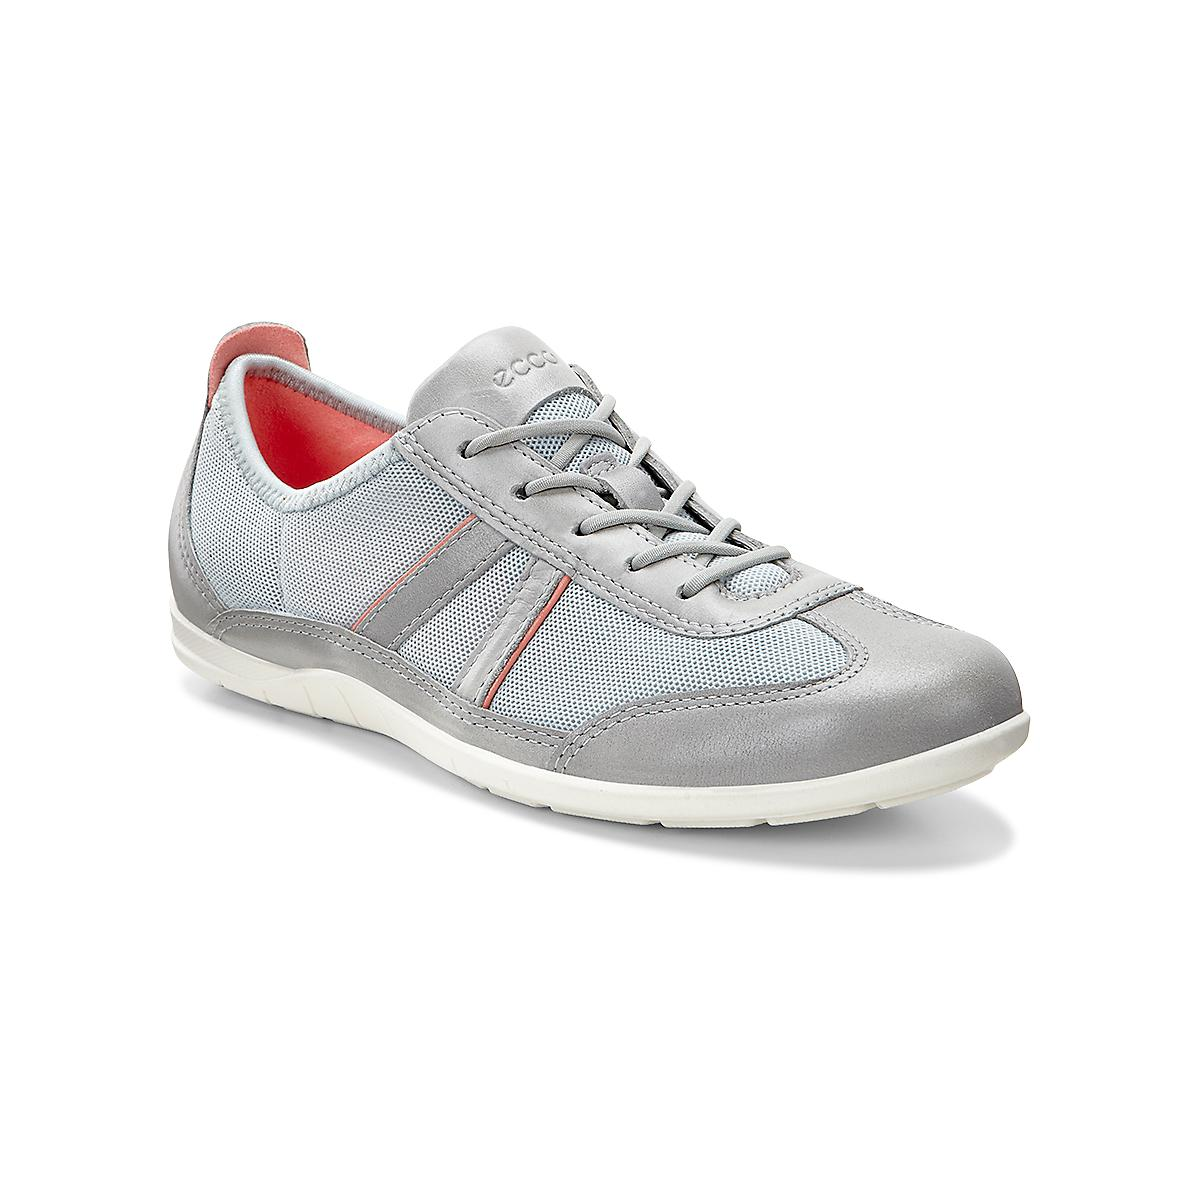 9bab8a07351d Womens Ecco Bluma Summer Sneaker Casual Shoe at Road Runner Sports